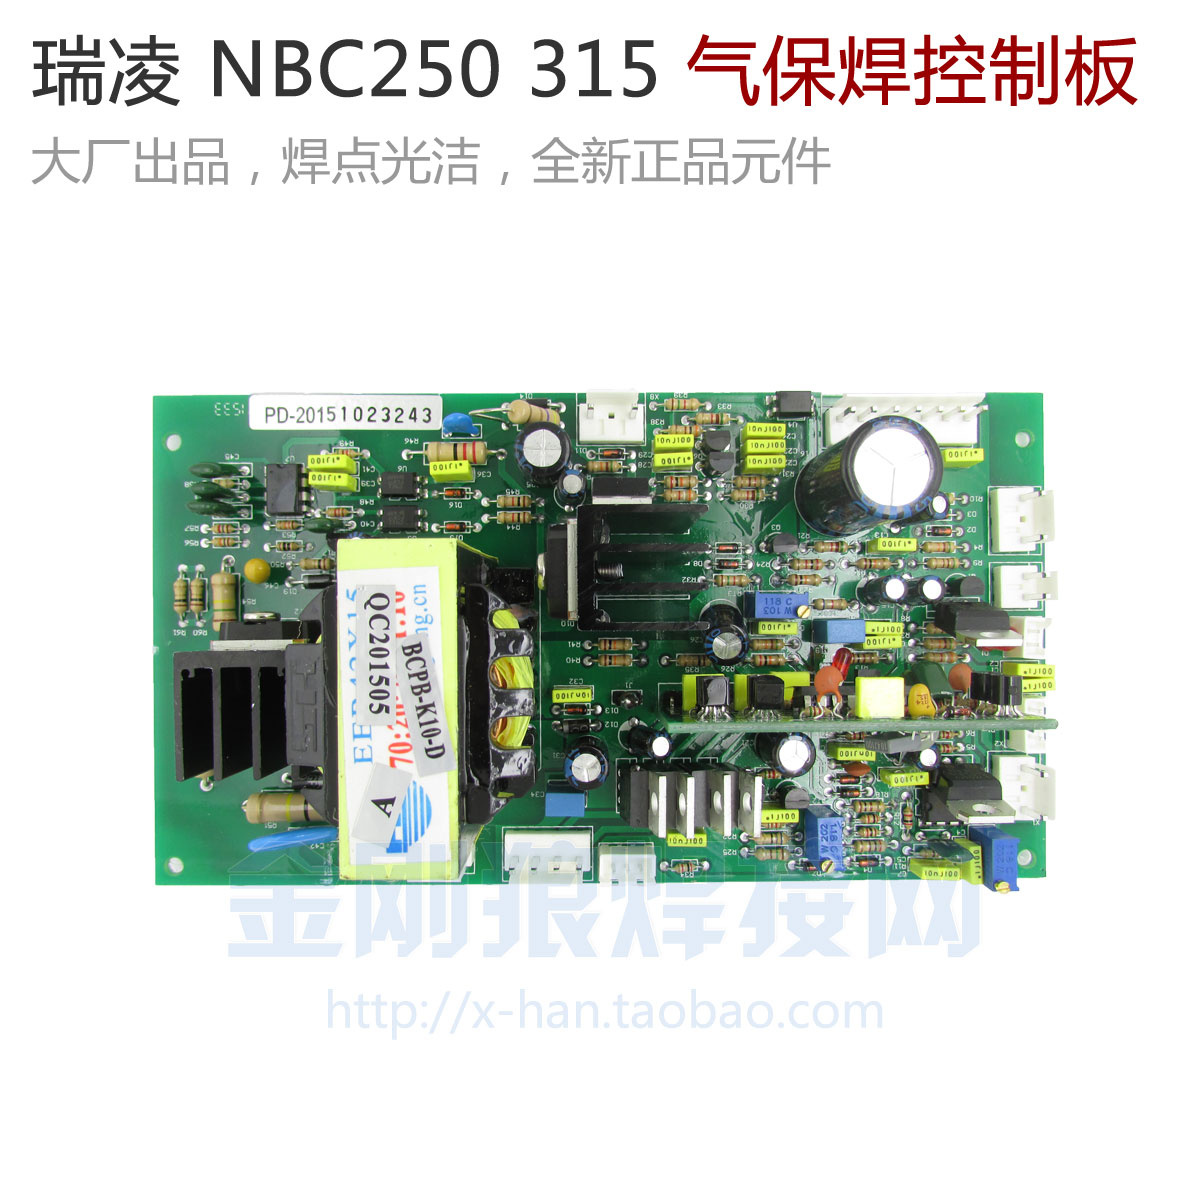 Nbc250 315 Mos Inverter Carbon Dioxide Gas Welder Control Panel Circuit Board Spare No Cost At Any Cost Hand & Power Tool Accessories